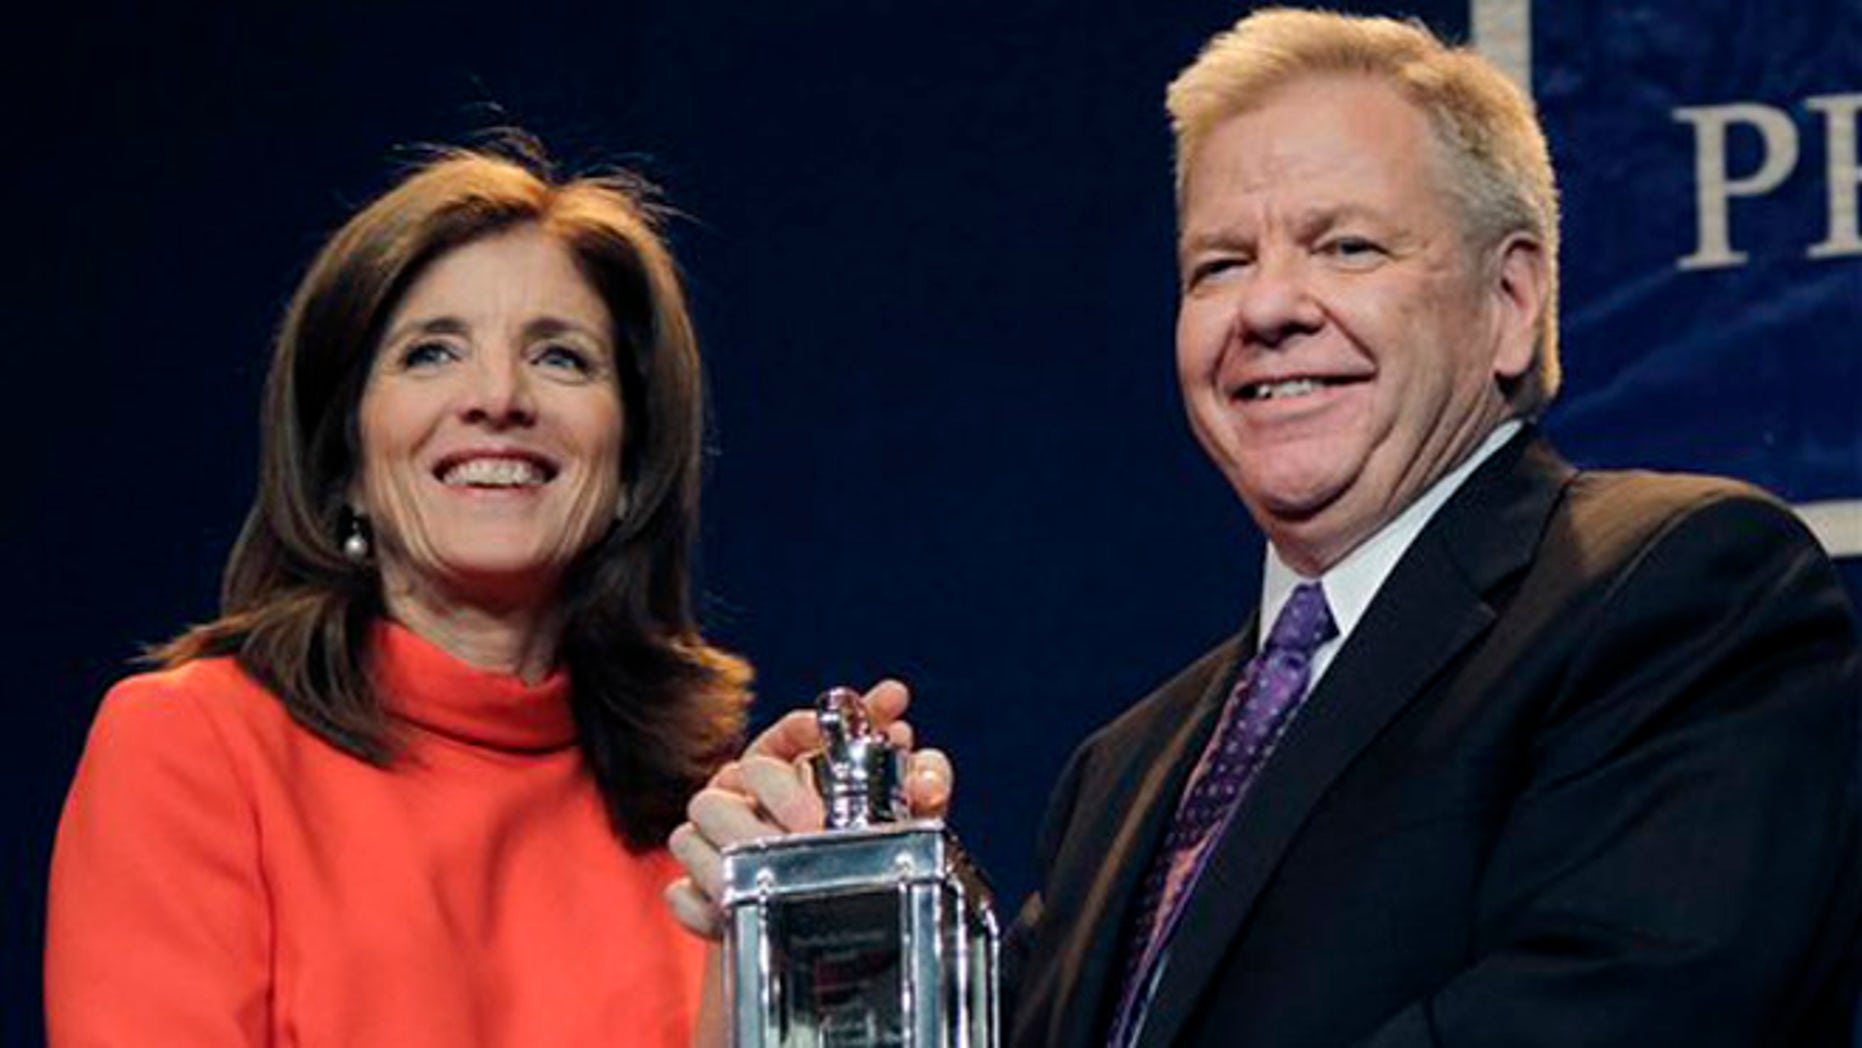 May 7, 2012: Caroline Kennedy, left, presents the 2012 John F. Kennedy Profile in Courage Award to Michael Streit, former Iowa Supreme Court Justice, during a ceremony at the JFK Library in Boston.